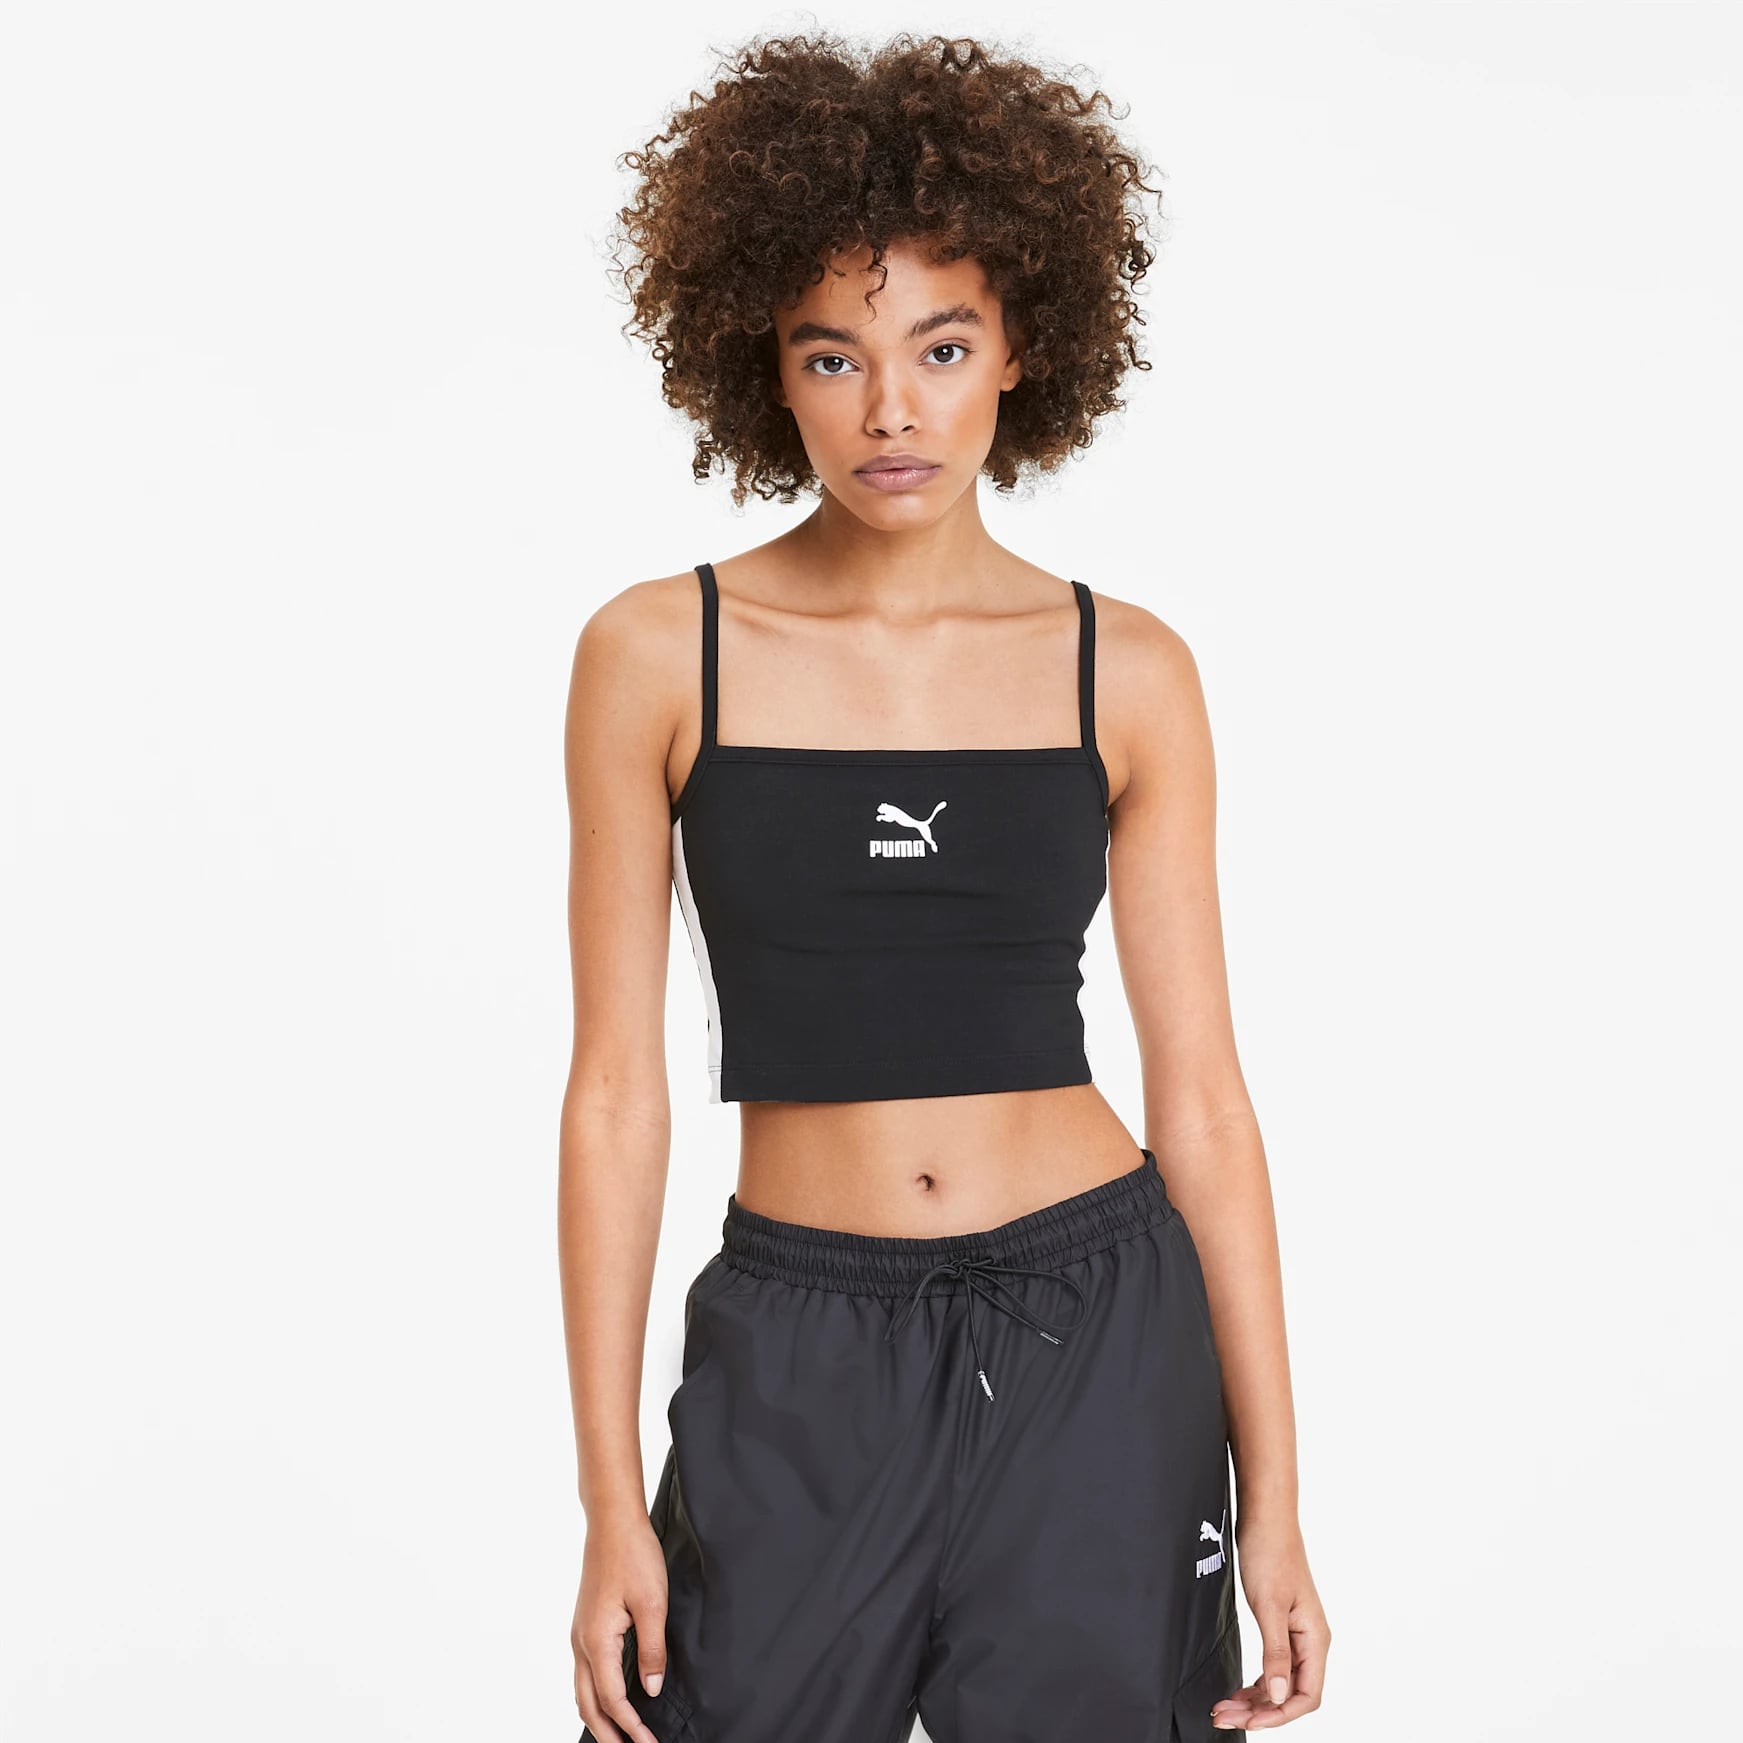 The Best Puma Workout Clothes For Women | POPSUGAR Fitness